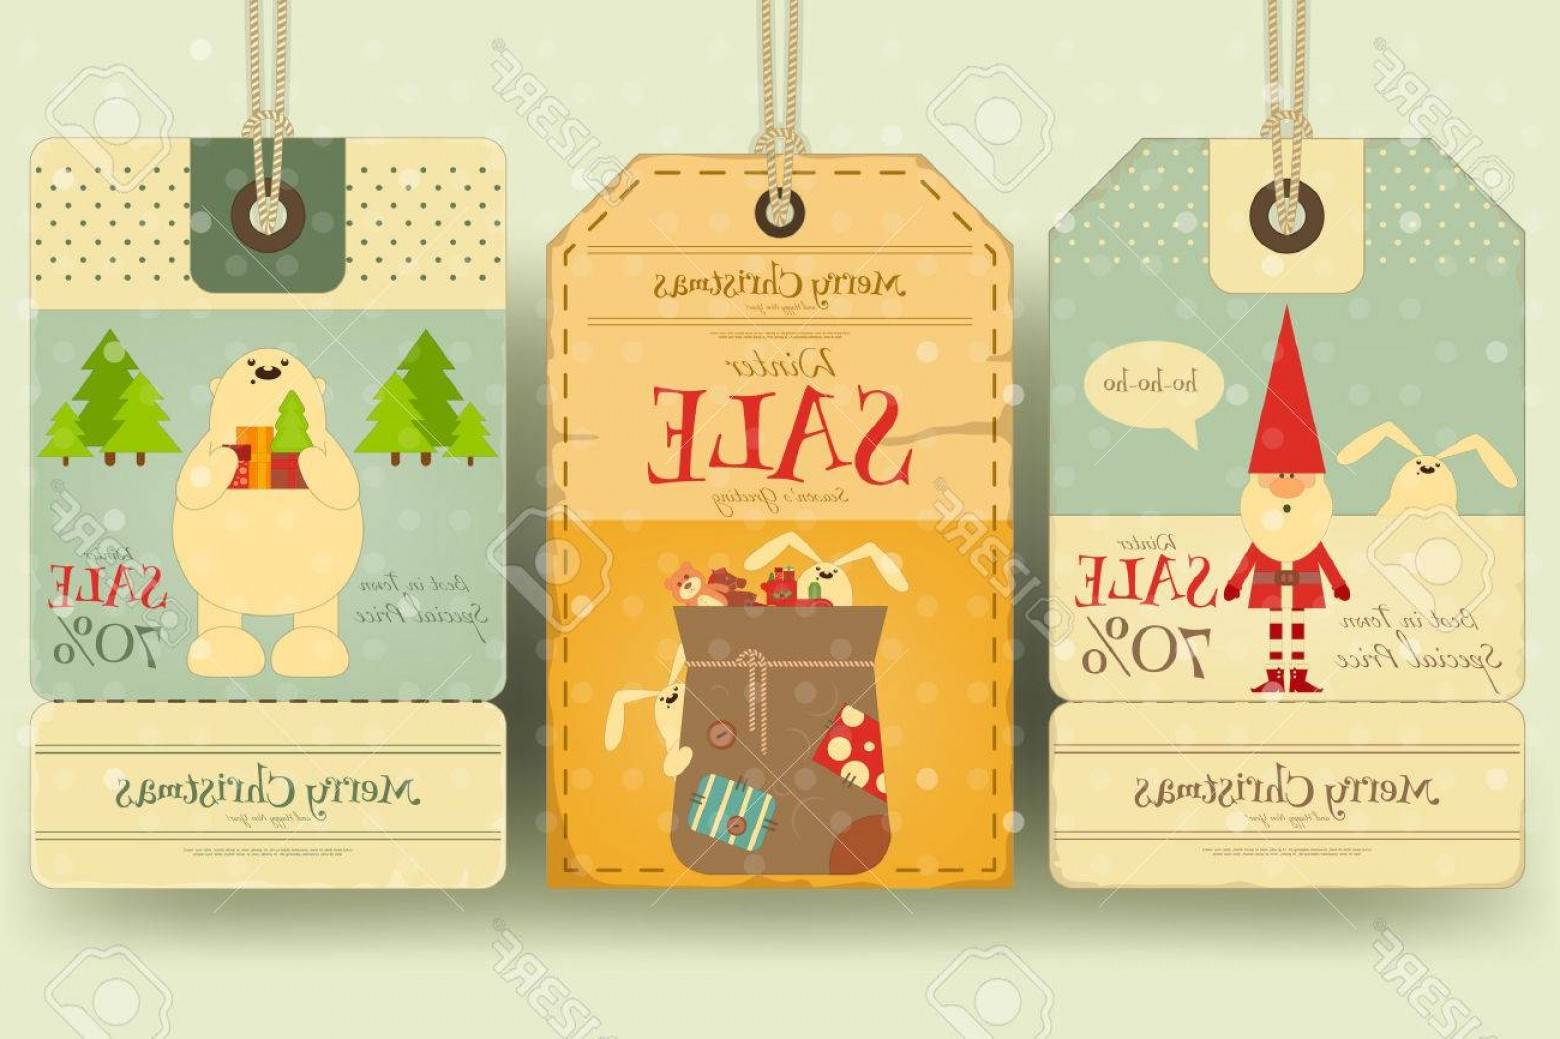 Vintage Xmas Sale Tag Vector: Photostock Vector Christmas Sale Tags In Retro Style With Xmas Symbols Santa Claus Polar Bear Winter Sell Out Labels C